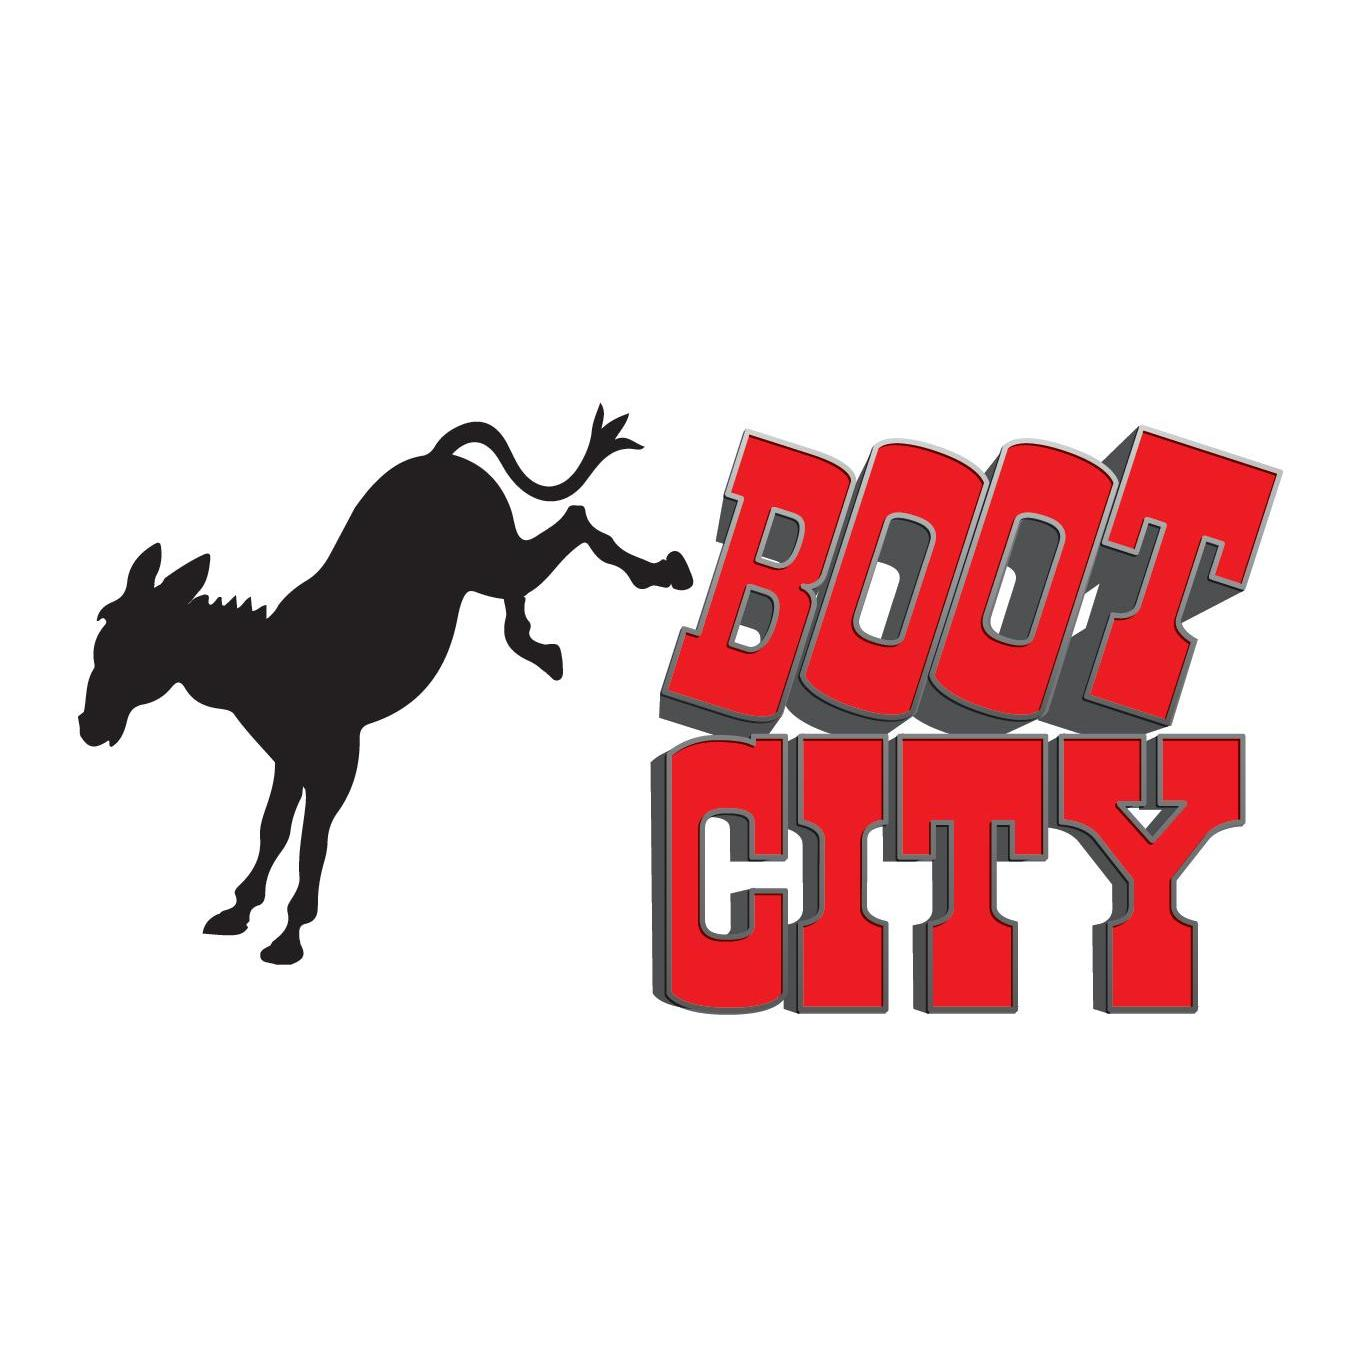 Boot City Coupon & Deals currently has coupon_count active coupons. Today's top coupons: Get 50% Off Sitewide At Boot City Coupon & Deals. Use Boot City Coupon & Deals coupons to save on Boot City Coupon & Deals purchase in Sports. If you're looking for Boot City Coupon & Deals coupons, you're in the right place.